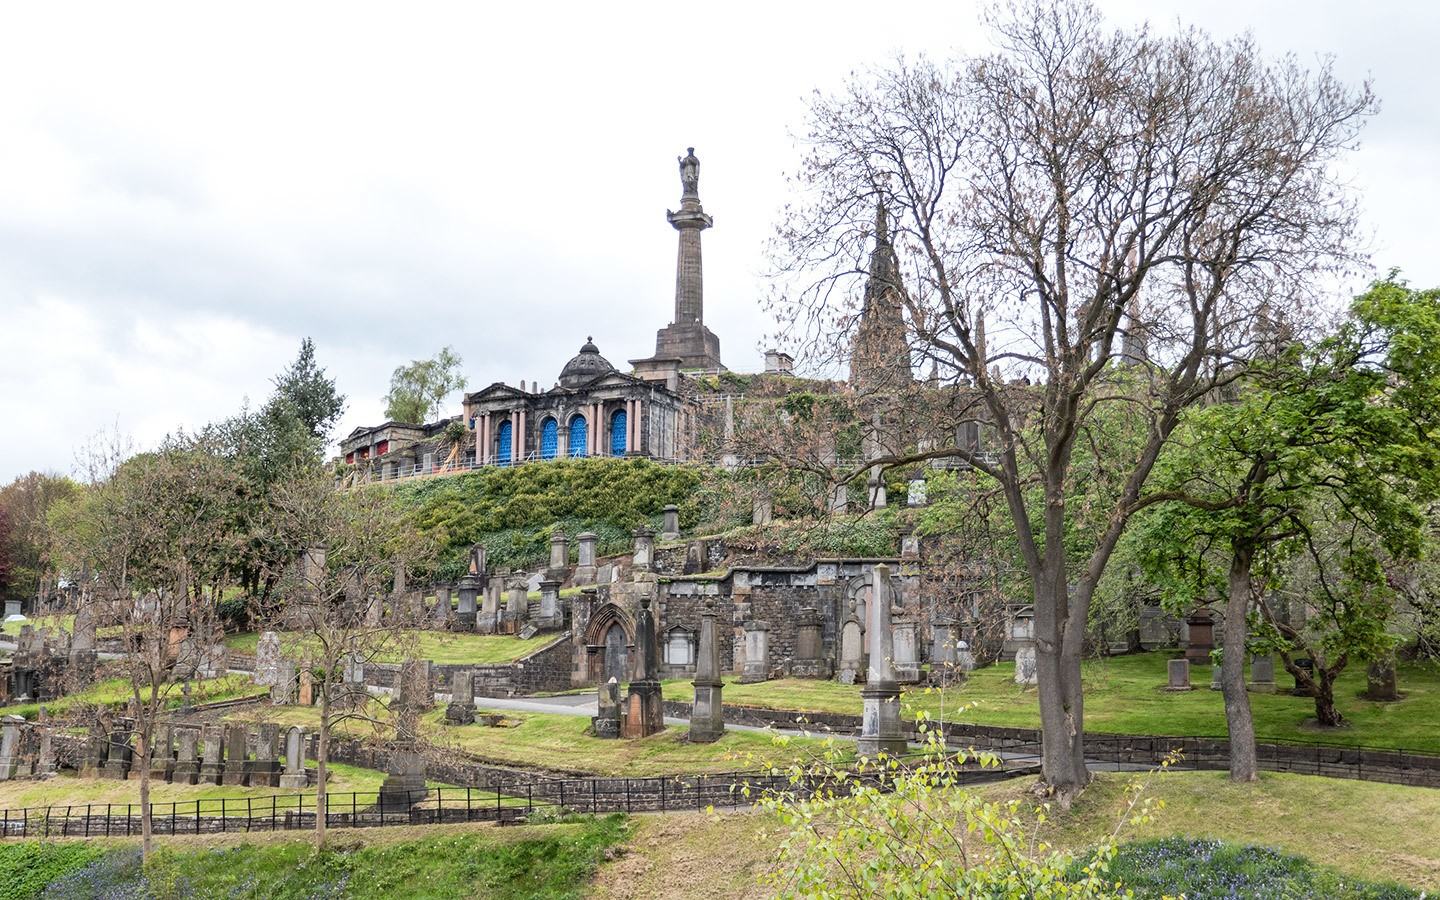 Glasgow's Victorian Necropolis on a hillside